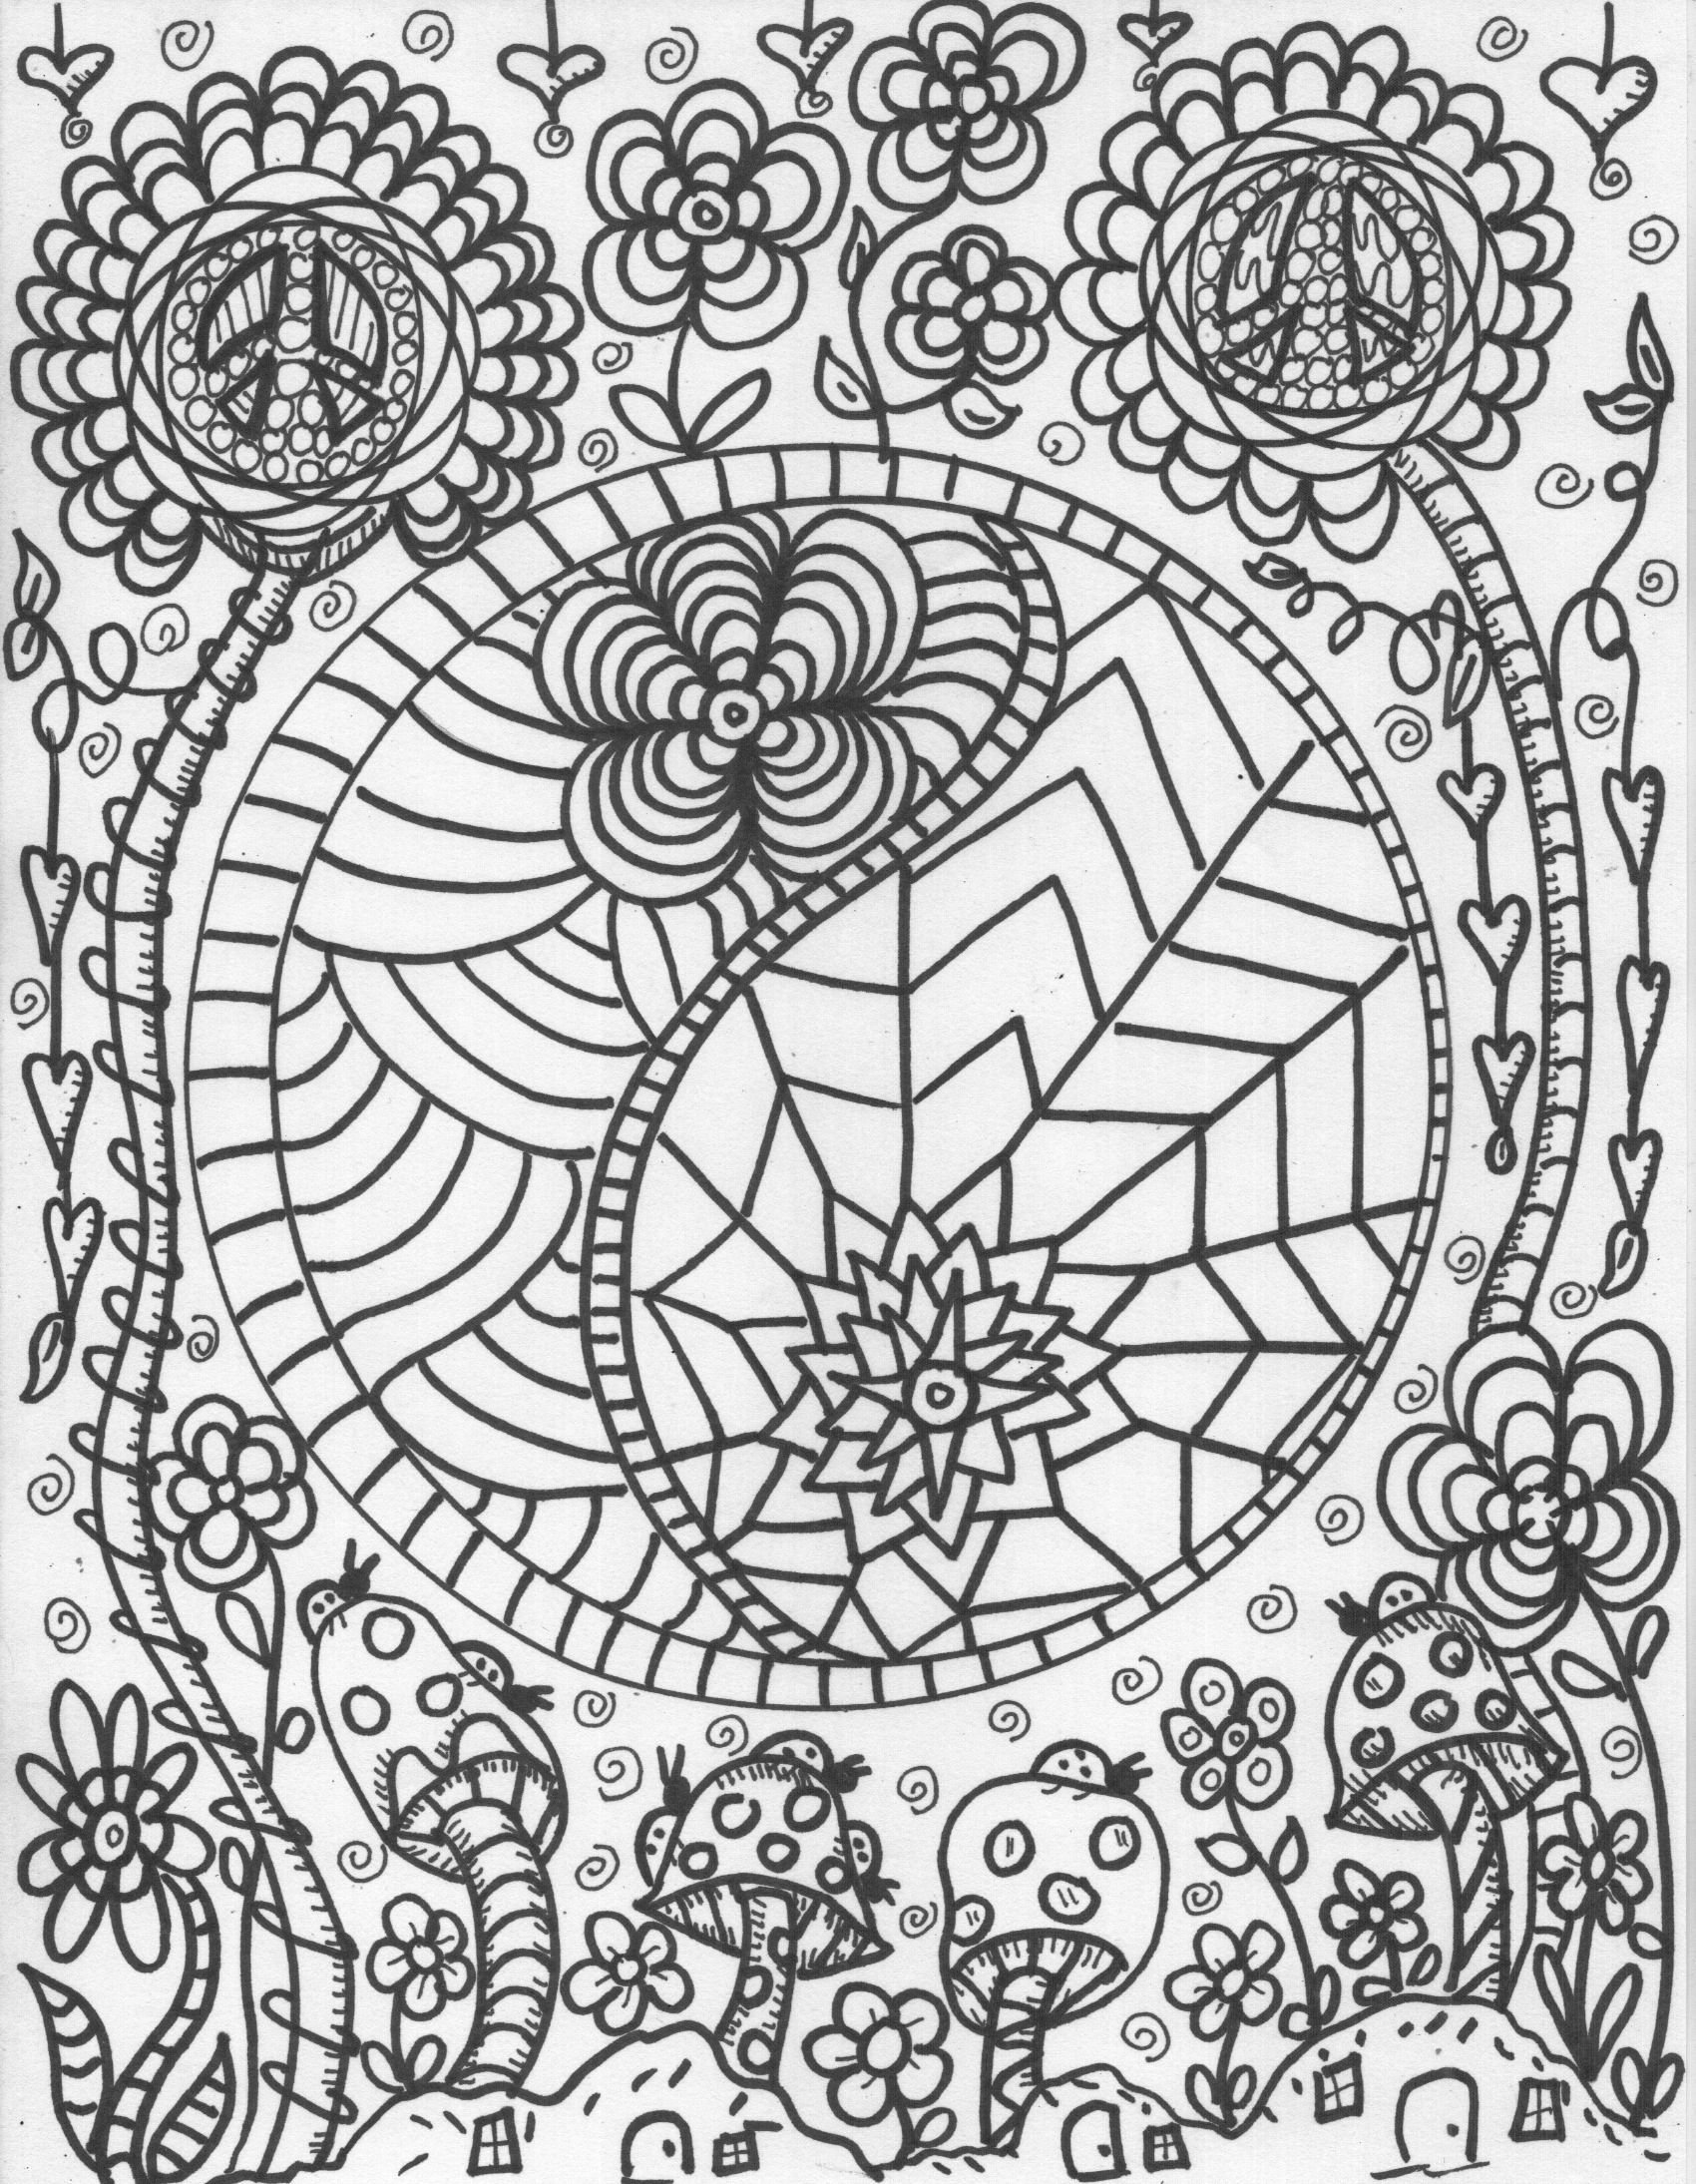 coloring pattern pages coloring page world paisley flower pattern portrait coloring pages pattern